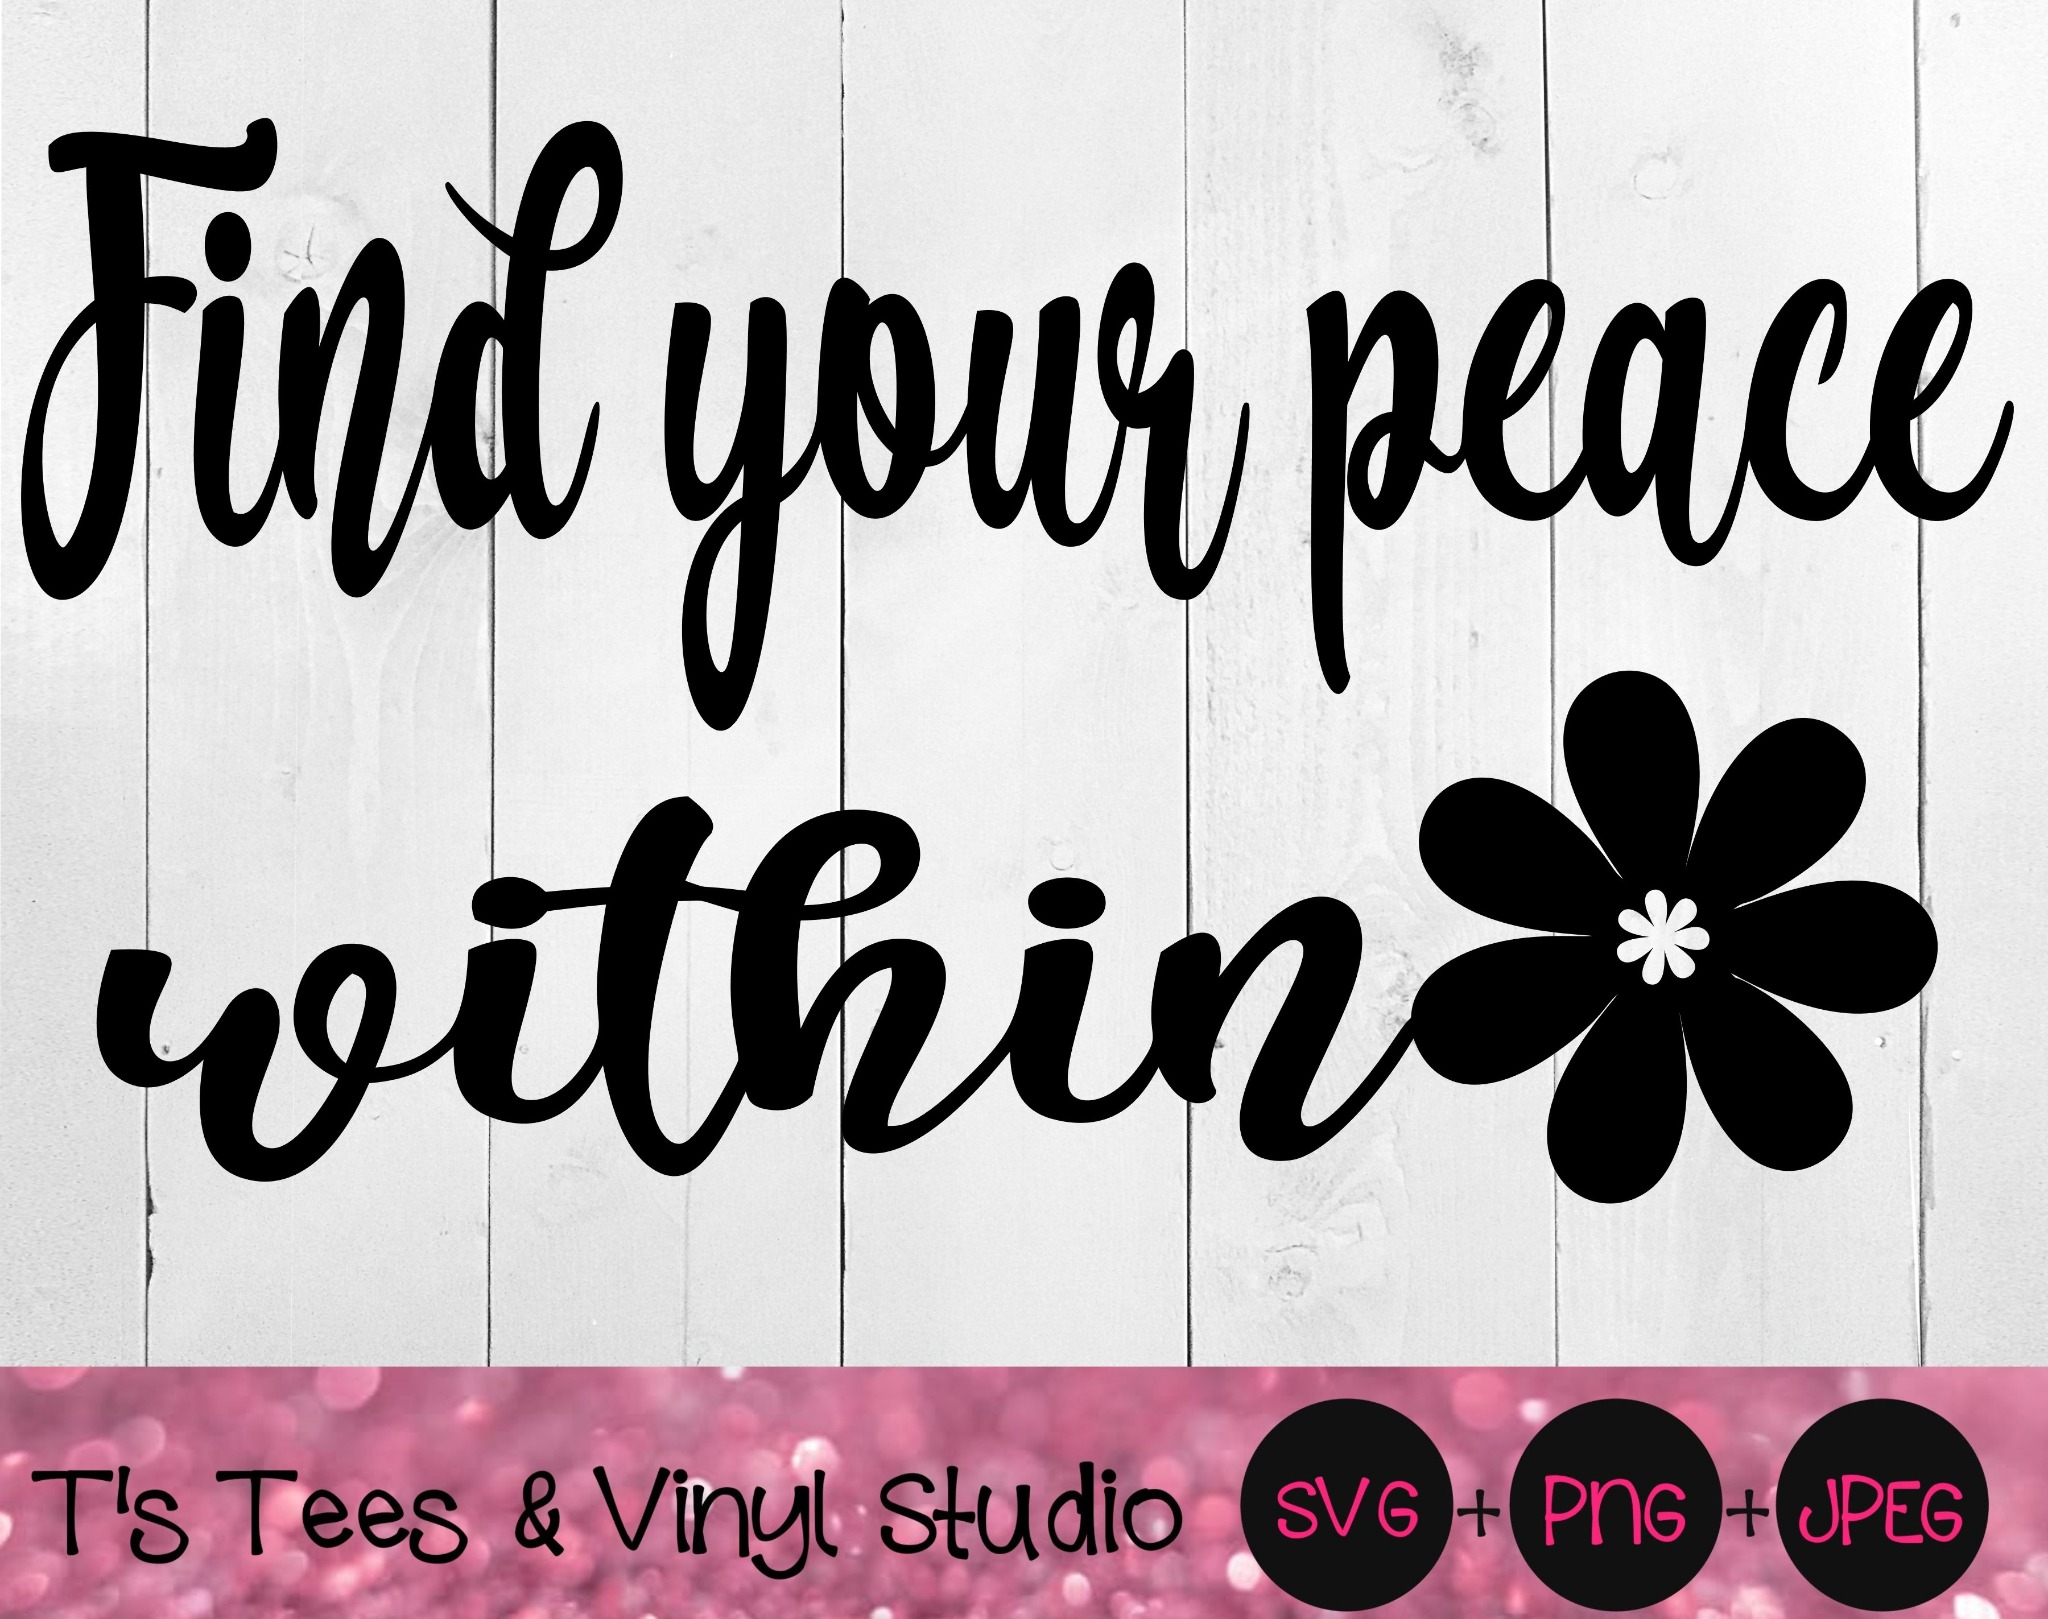 Peace Svg, Serenity Png, Find Your Peace Within Svg, Love Yourself, Relaxation, Peace Png, Serenity